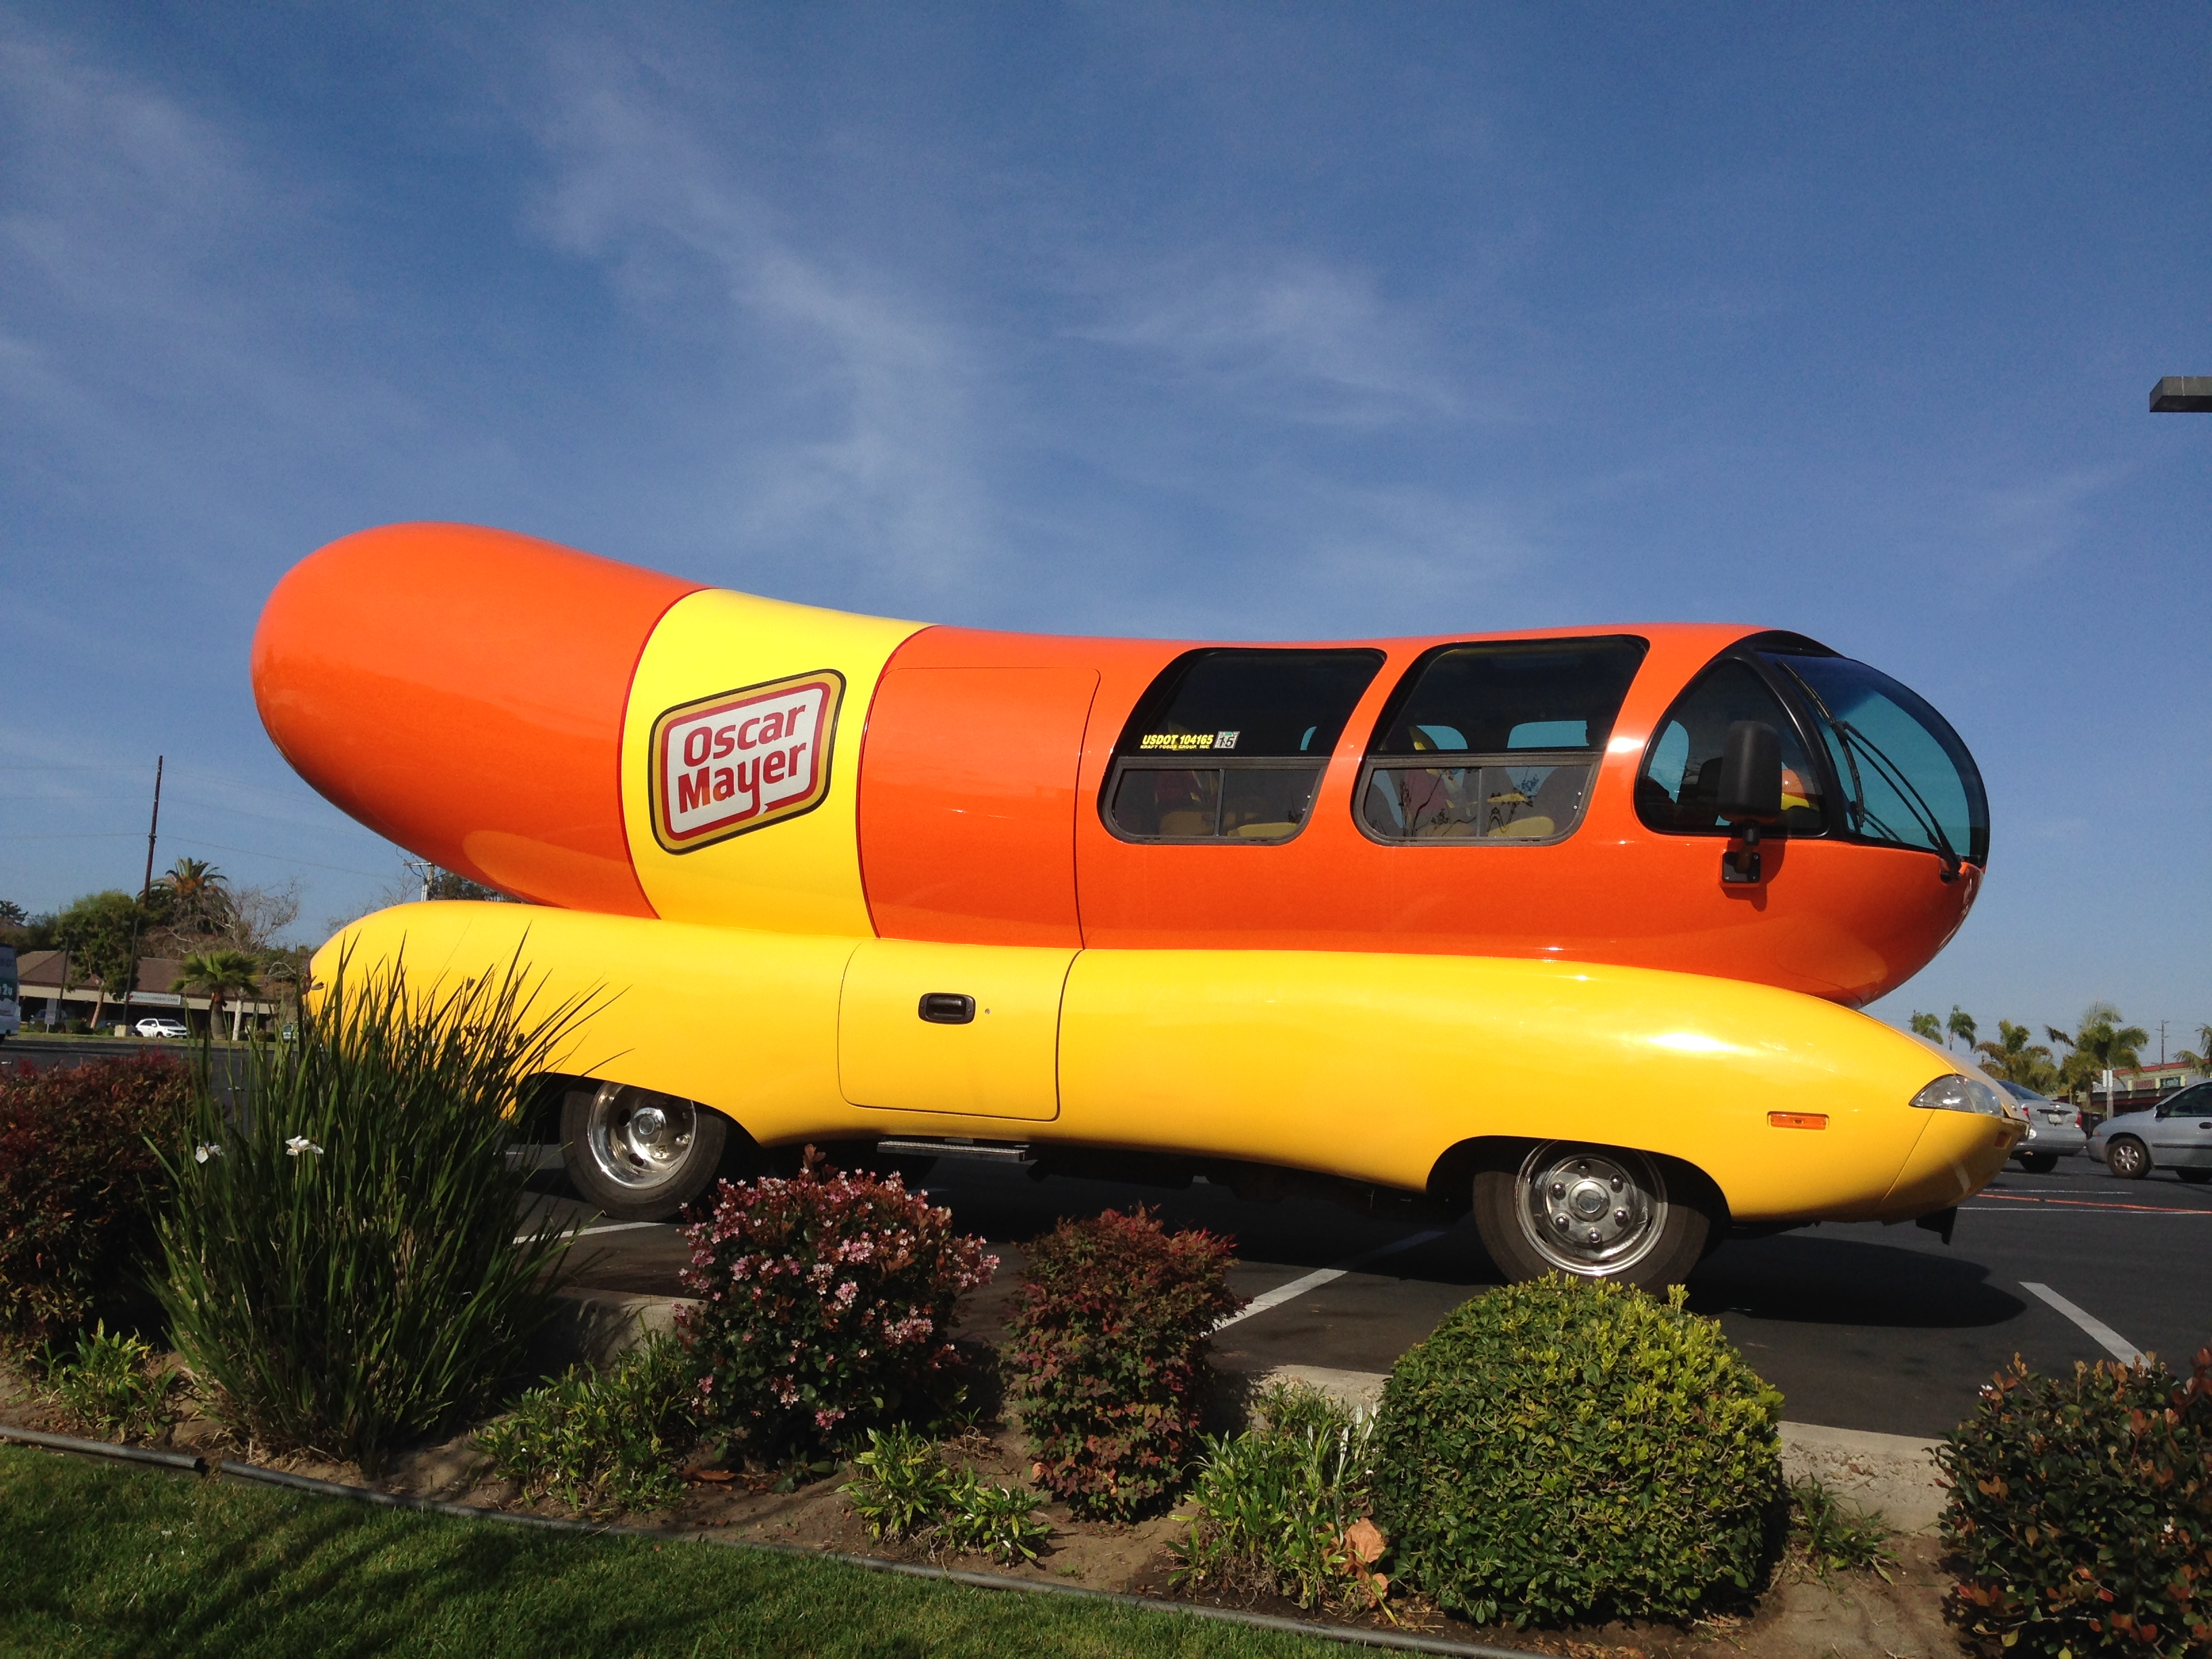 292641 likewise Feast Wienermobile Takes San Diego Ride besides Disneyland Half Marathon Packing List moreover Oscar Mayer Weinermobile At Crossroads Walmart In Victorville further Heres What Its Like To Be A Hotdogger And Drive A Wienermobile. on oscar mayer wienermobile ride